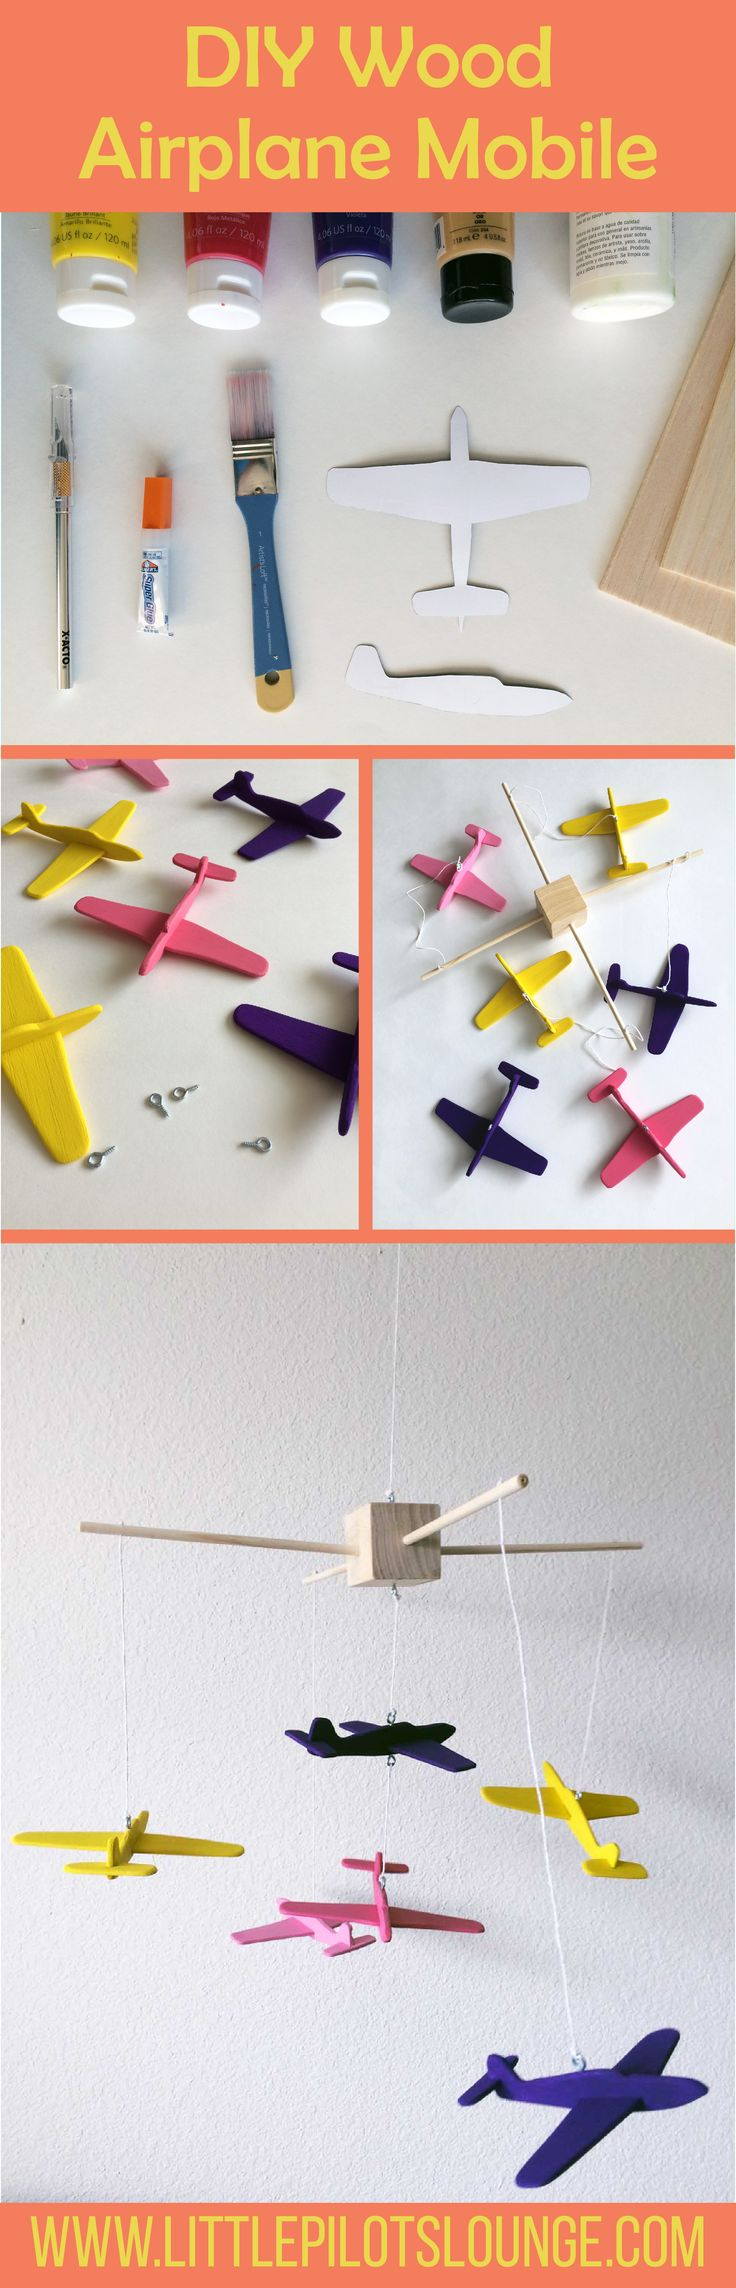 This wood airplane mobile is so easy and it looks adorable. I've been trying to decide if I should make my own nursery mobile and I think this is one project I can tackle.